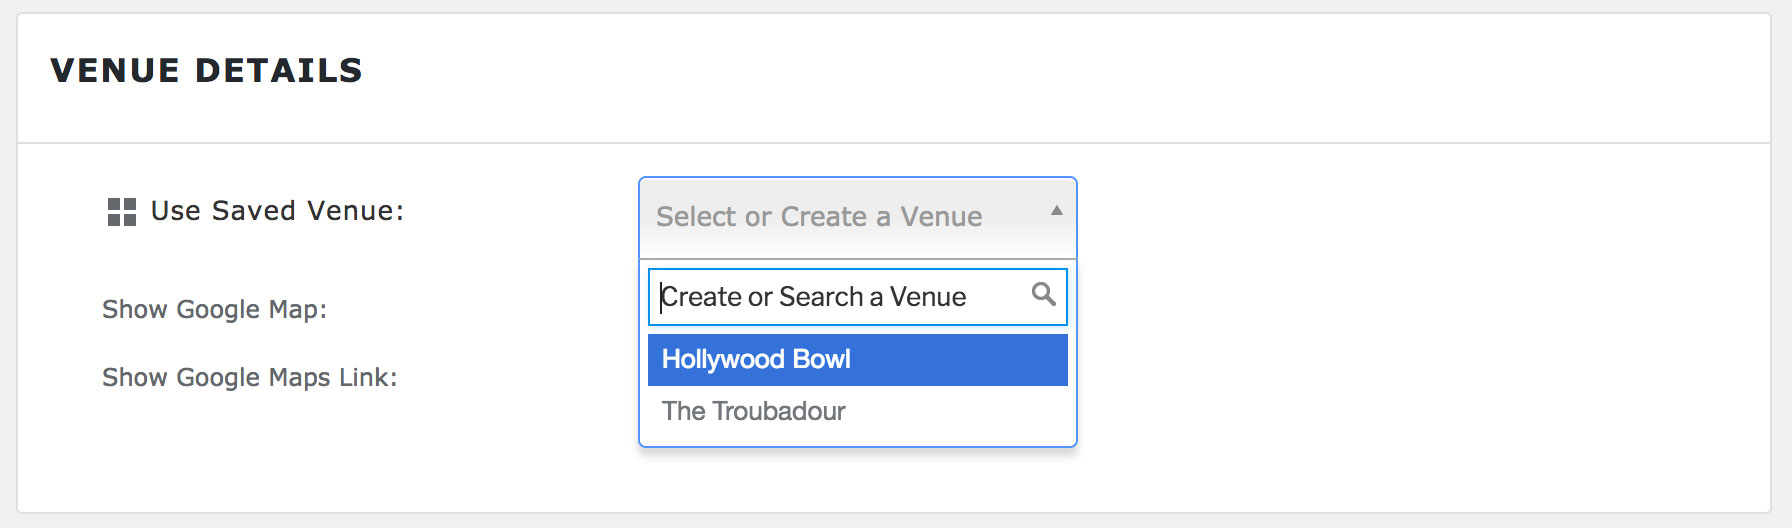 All saved Venues are displayed without the extension